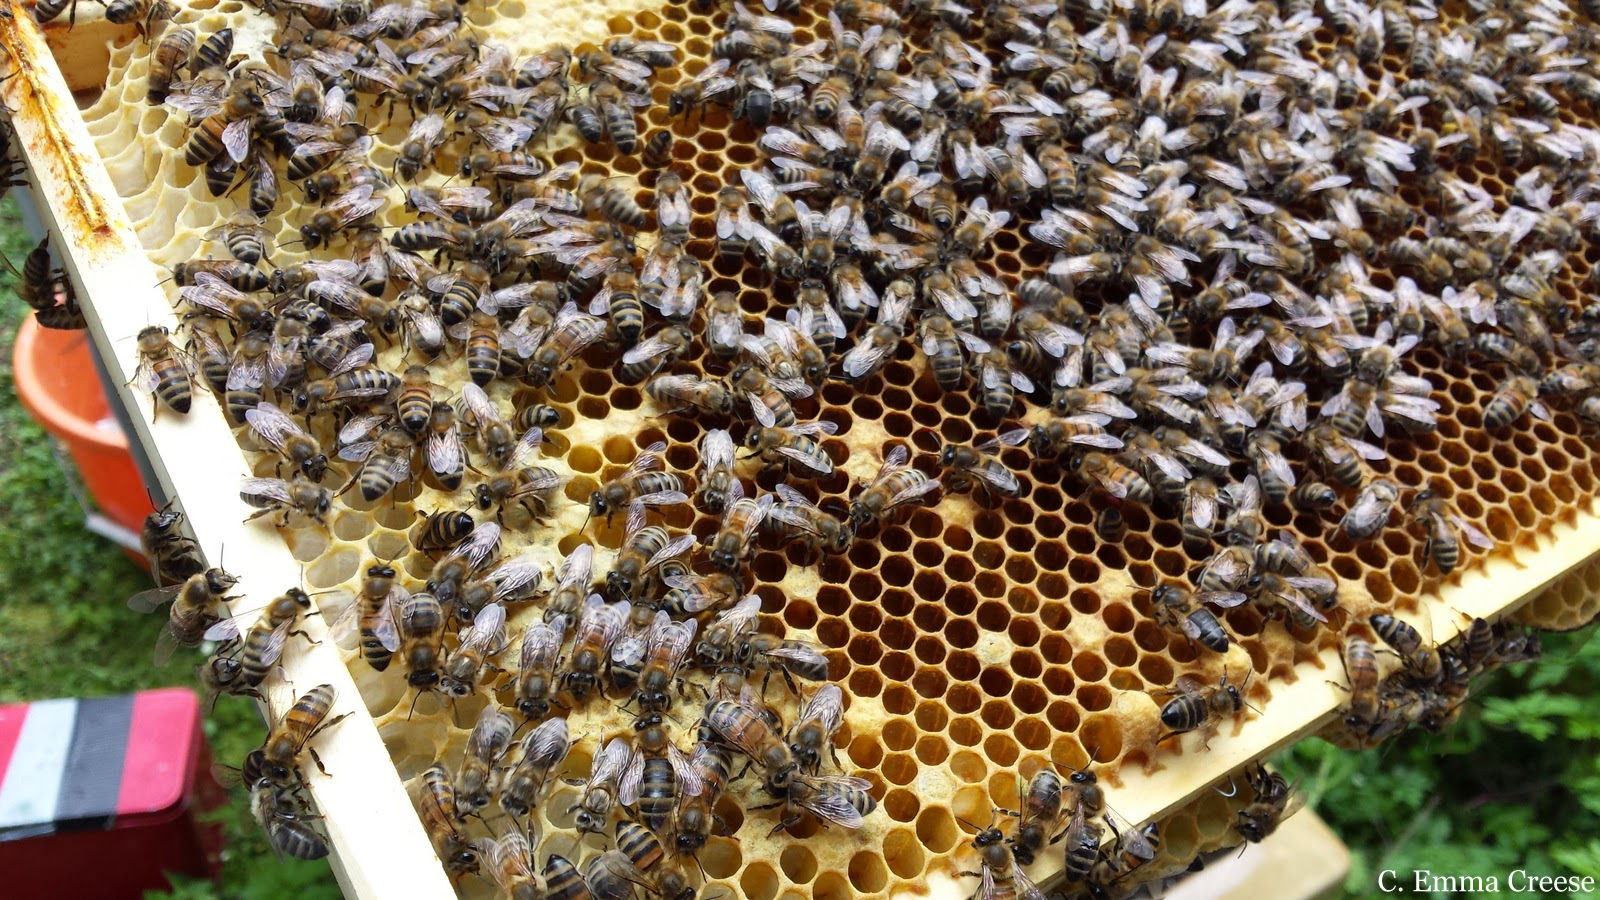 Q & A with Los Angeles Beekeeper, Staci Valentine